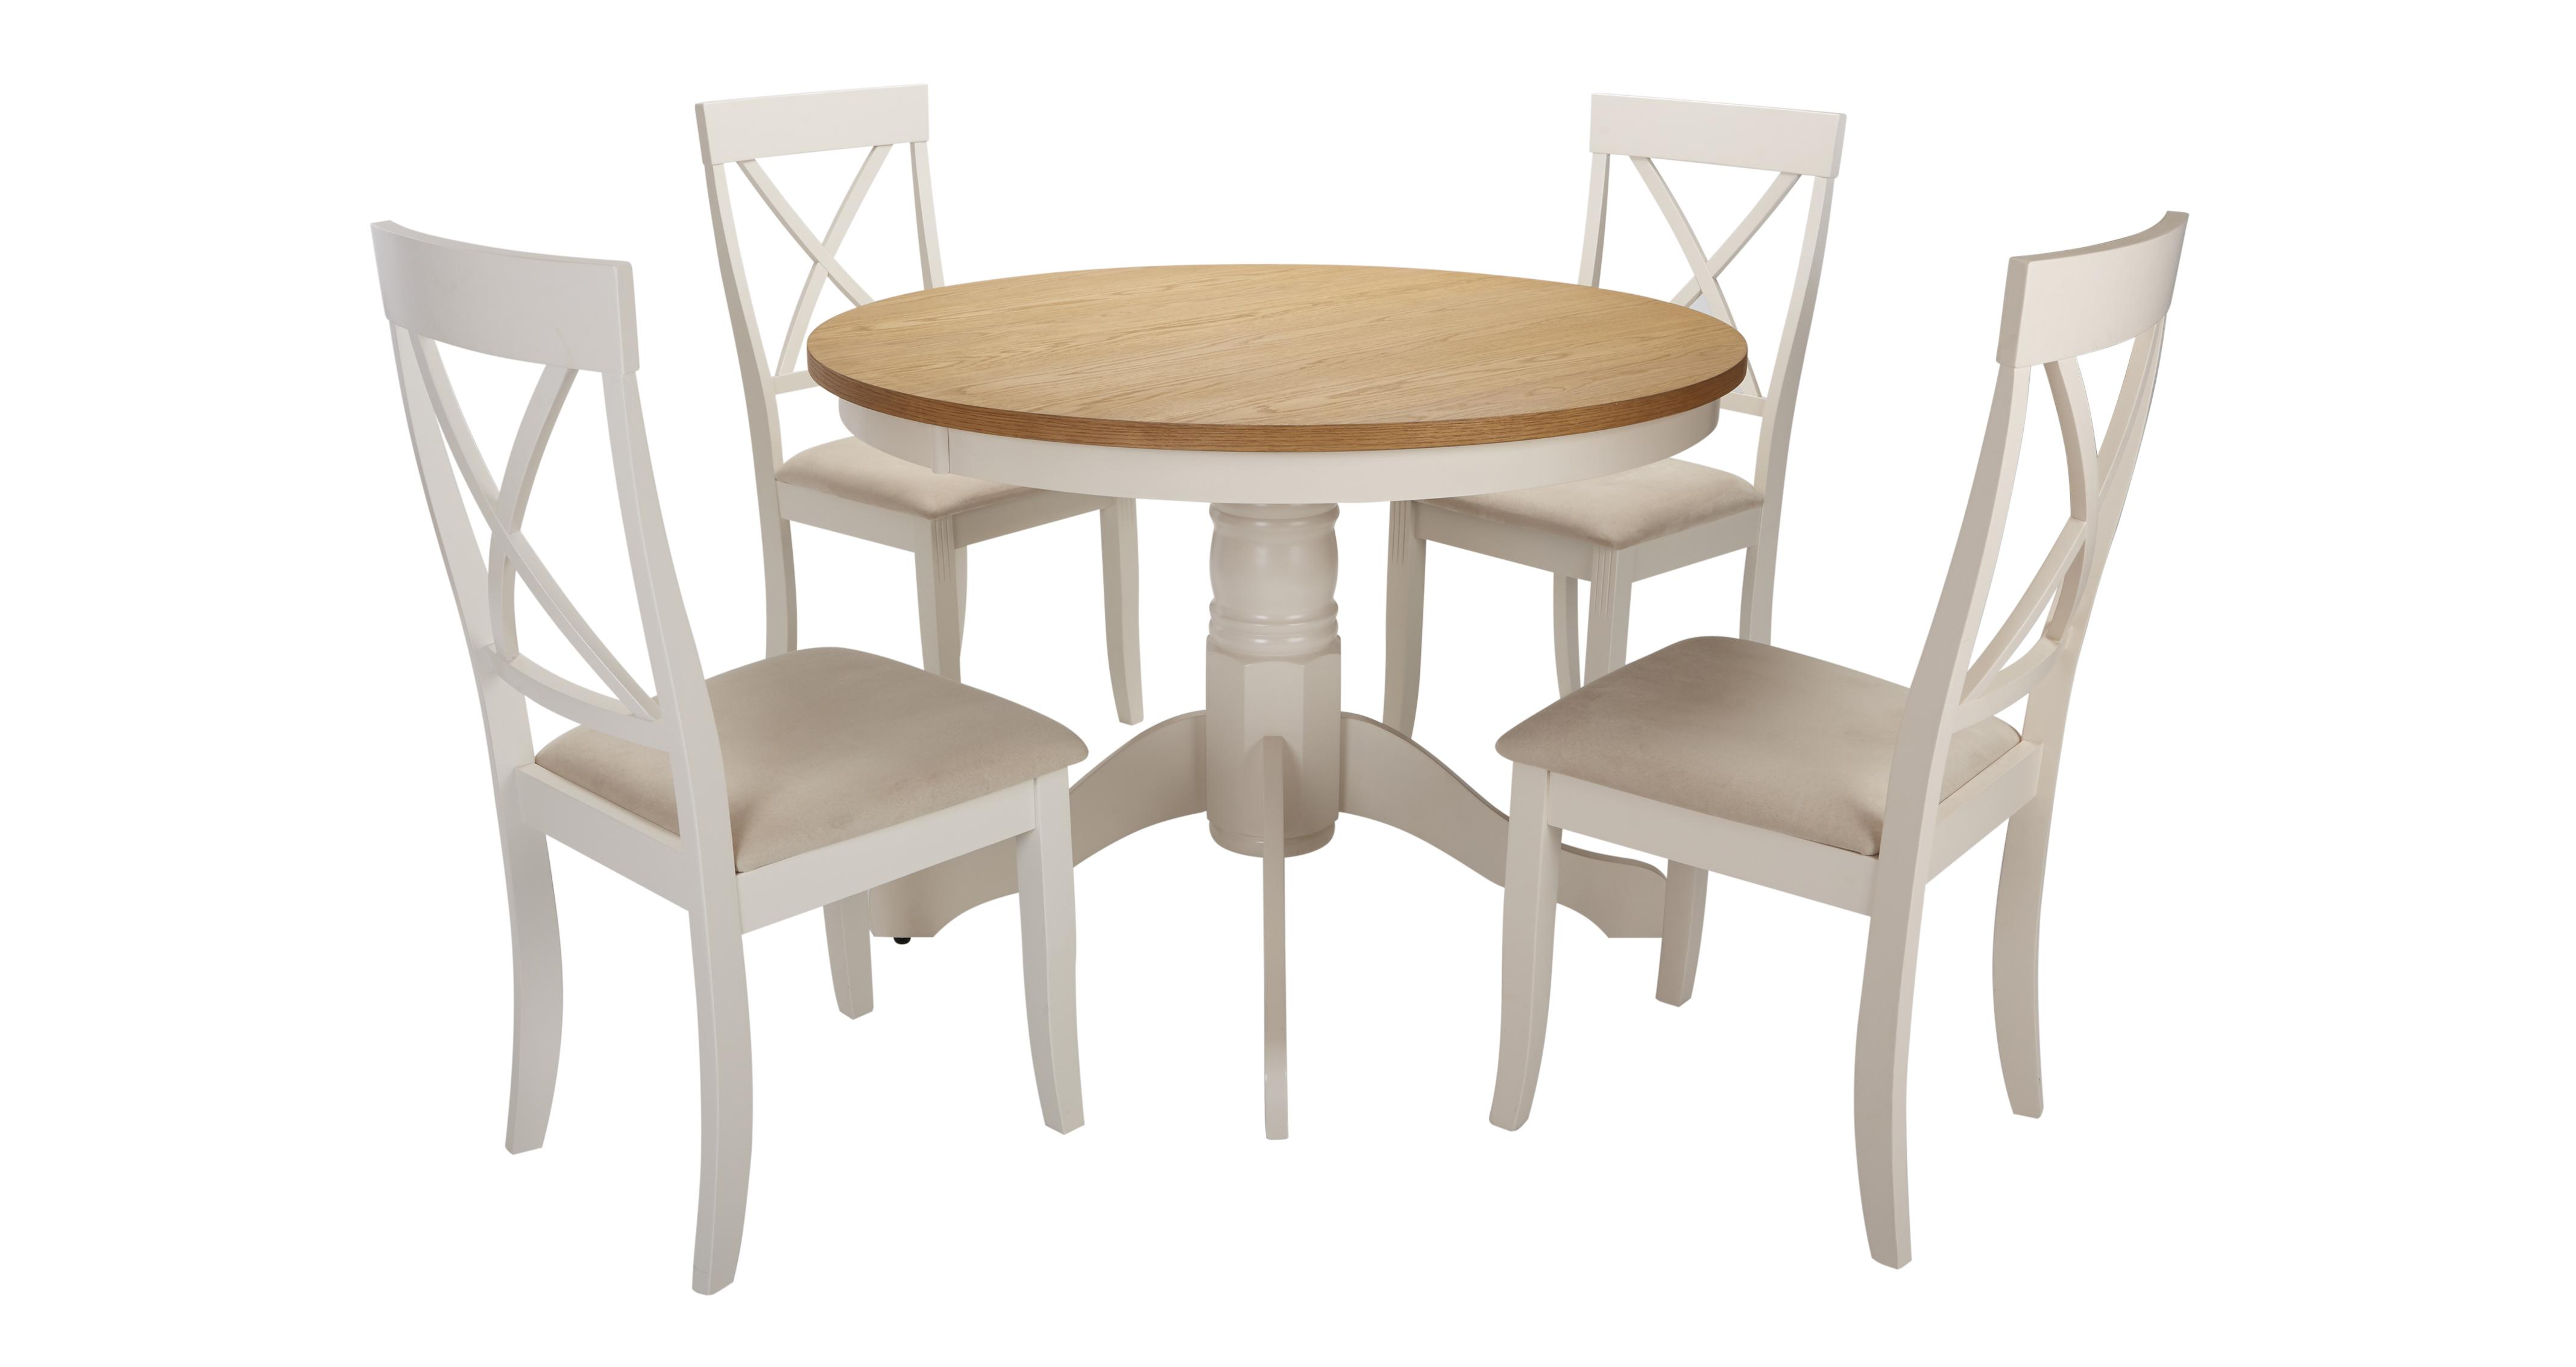 Evesham Round Pedestal Dining Table Set Of 4 Chairs Dfs